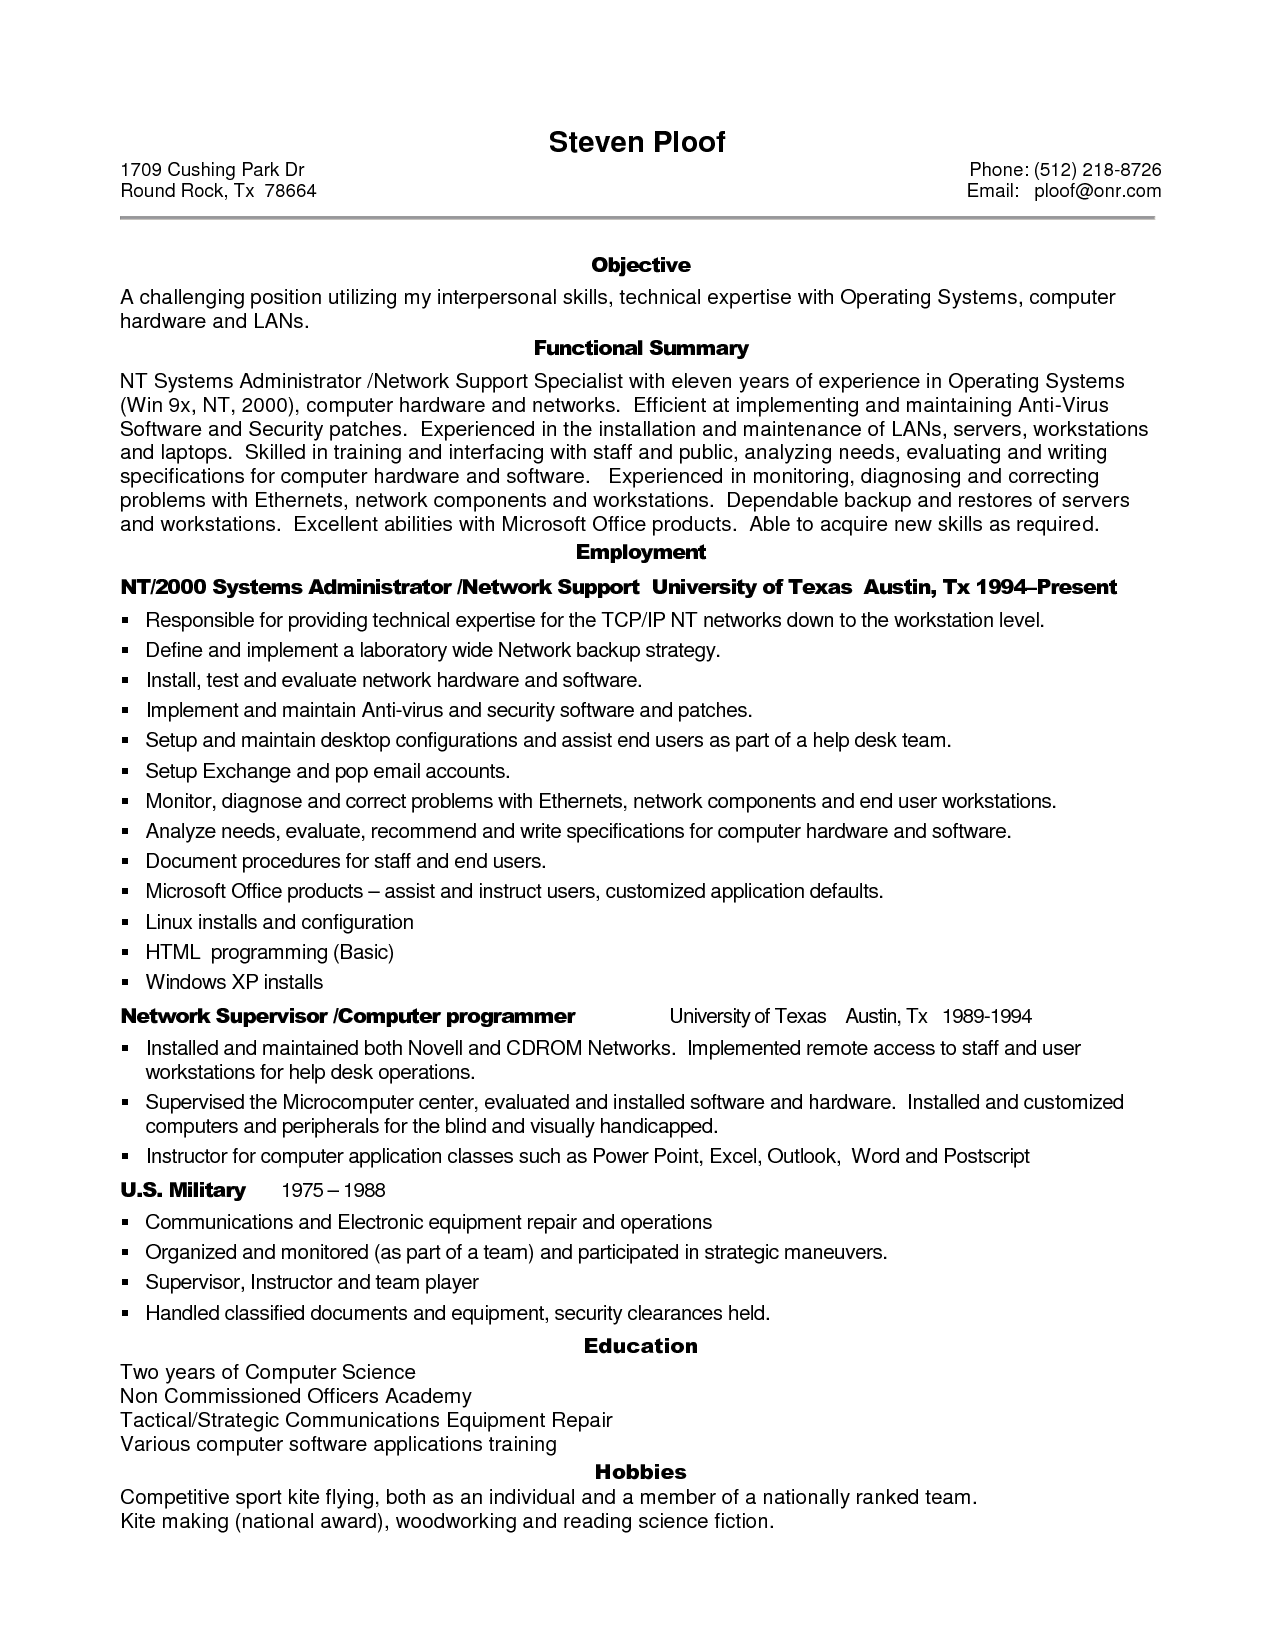 Sample Resume For Experienced It Professional Sample Resume For Experienced  It Professional, Resume Tips For  Resume It